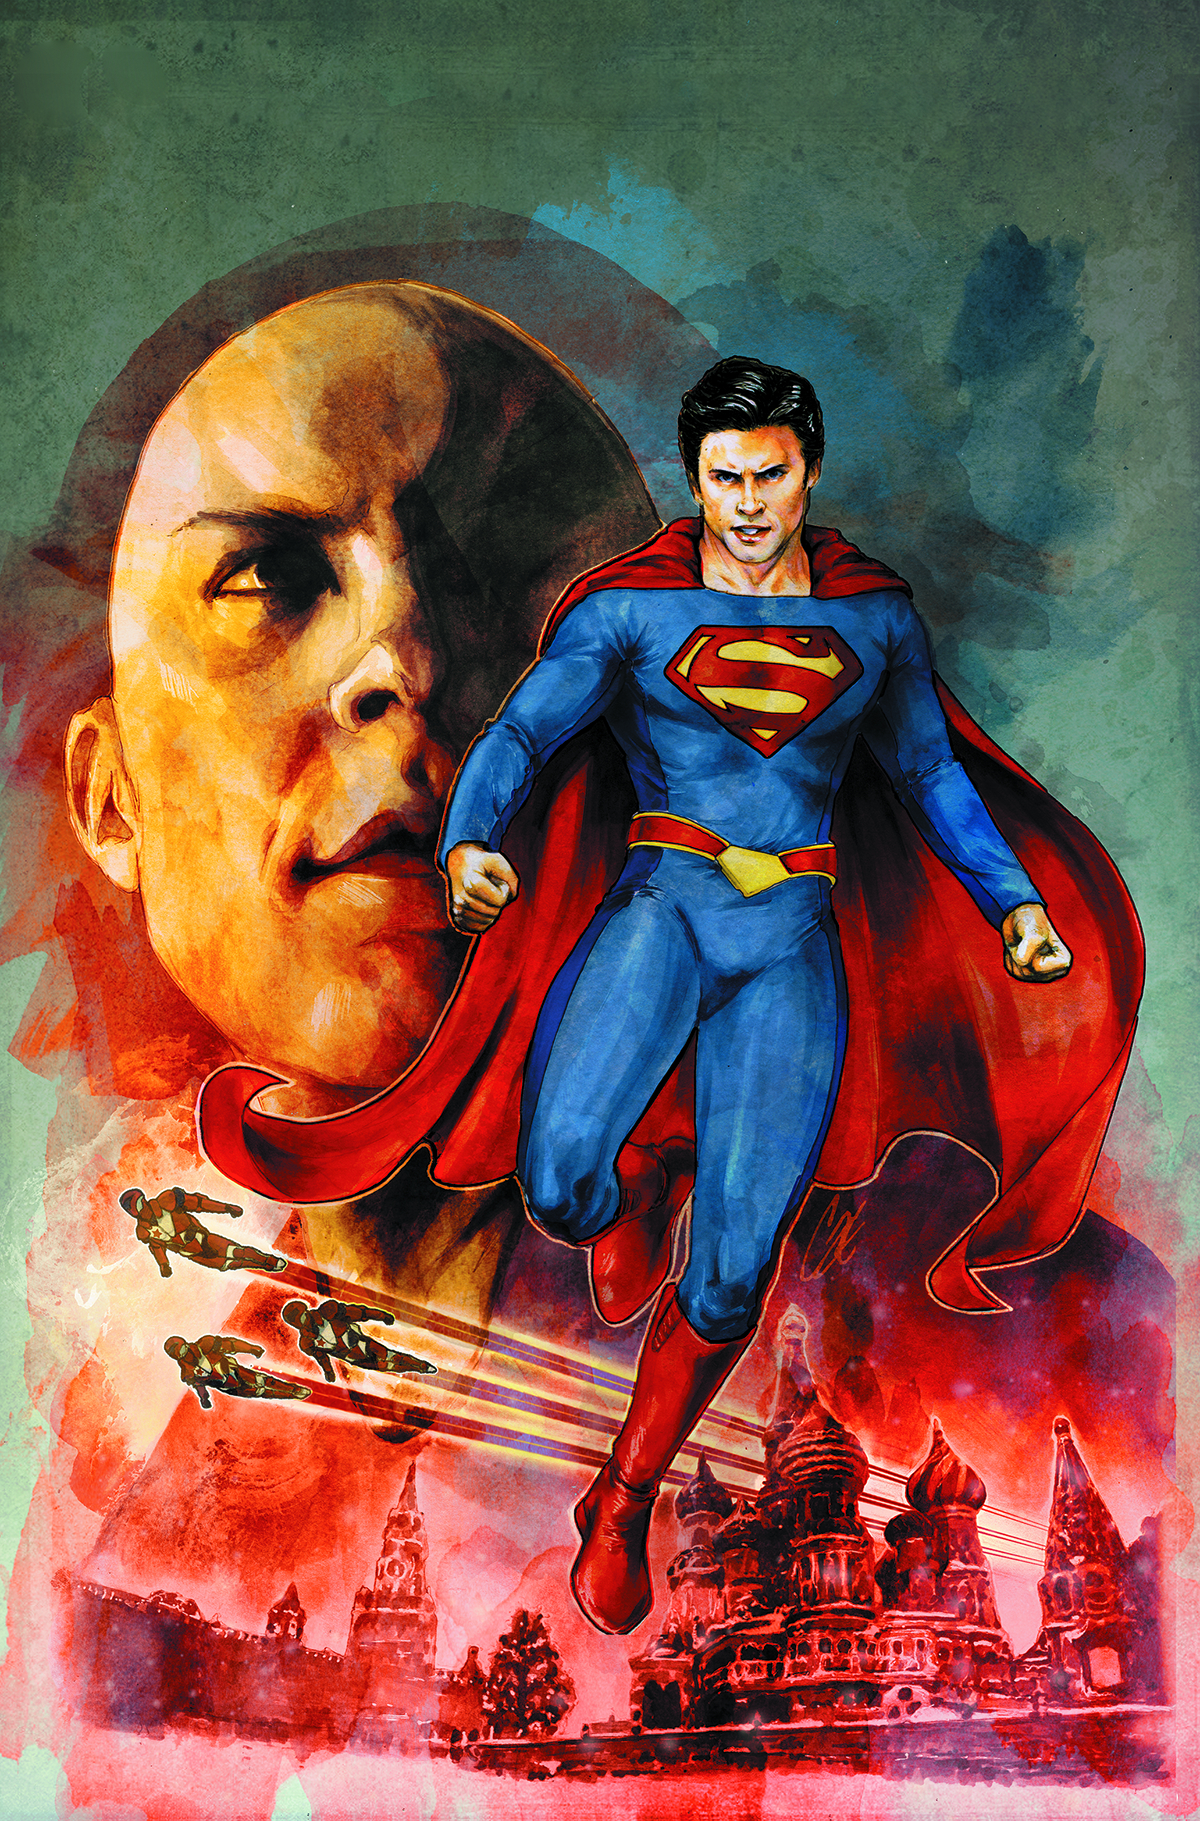 SMALLVILLE SEASON 11 TP VOL 06 ALIEN